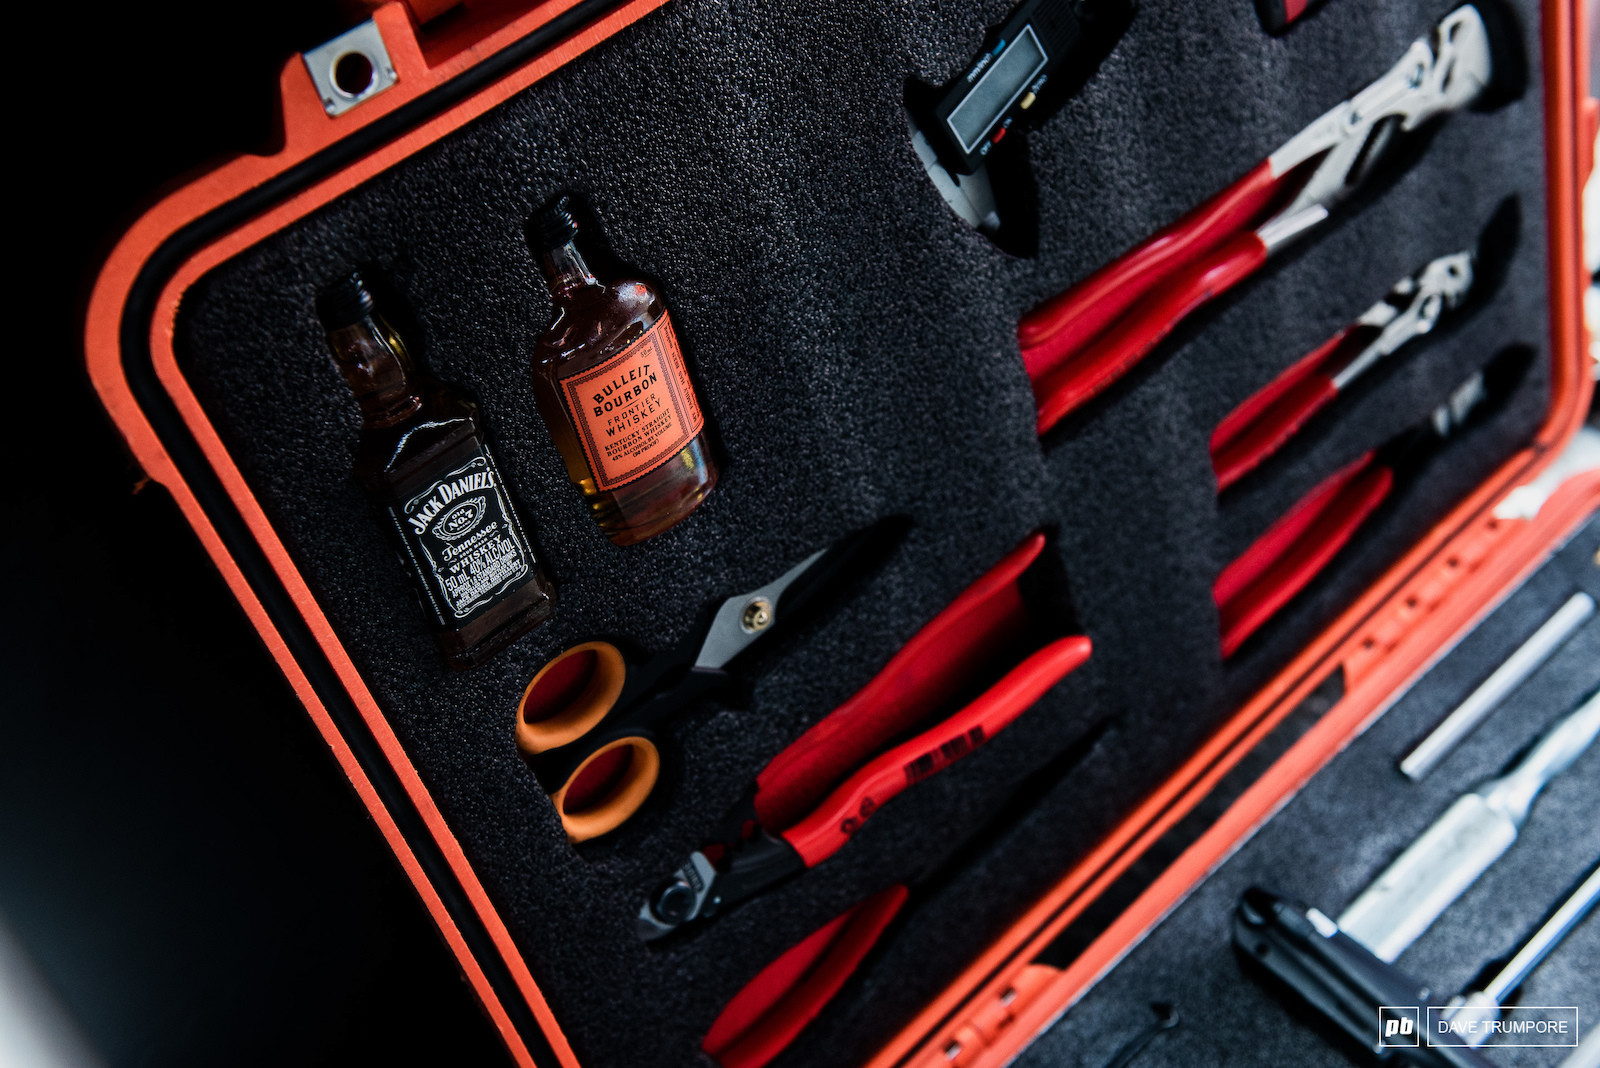 Only the essentials in World Champs tool kits